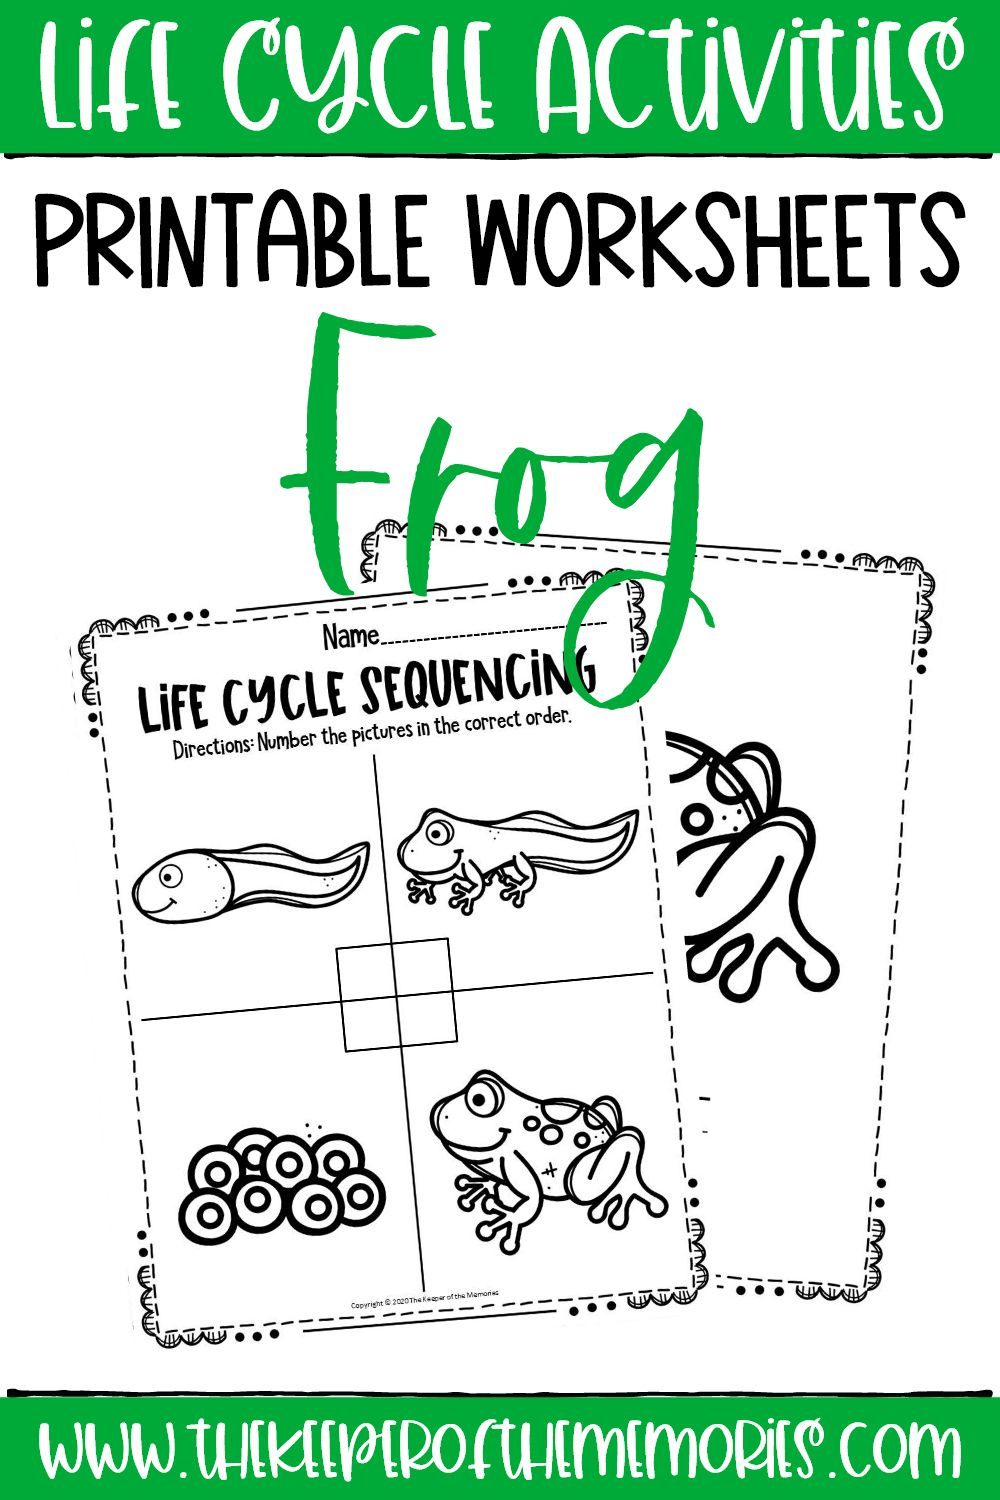 Free Printable Frog Life Cycle Worksheets Frog Life Kids Learning Activities Lifecycle Of A Frog